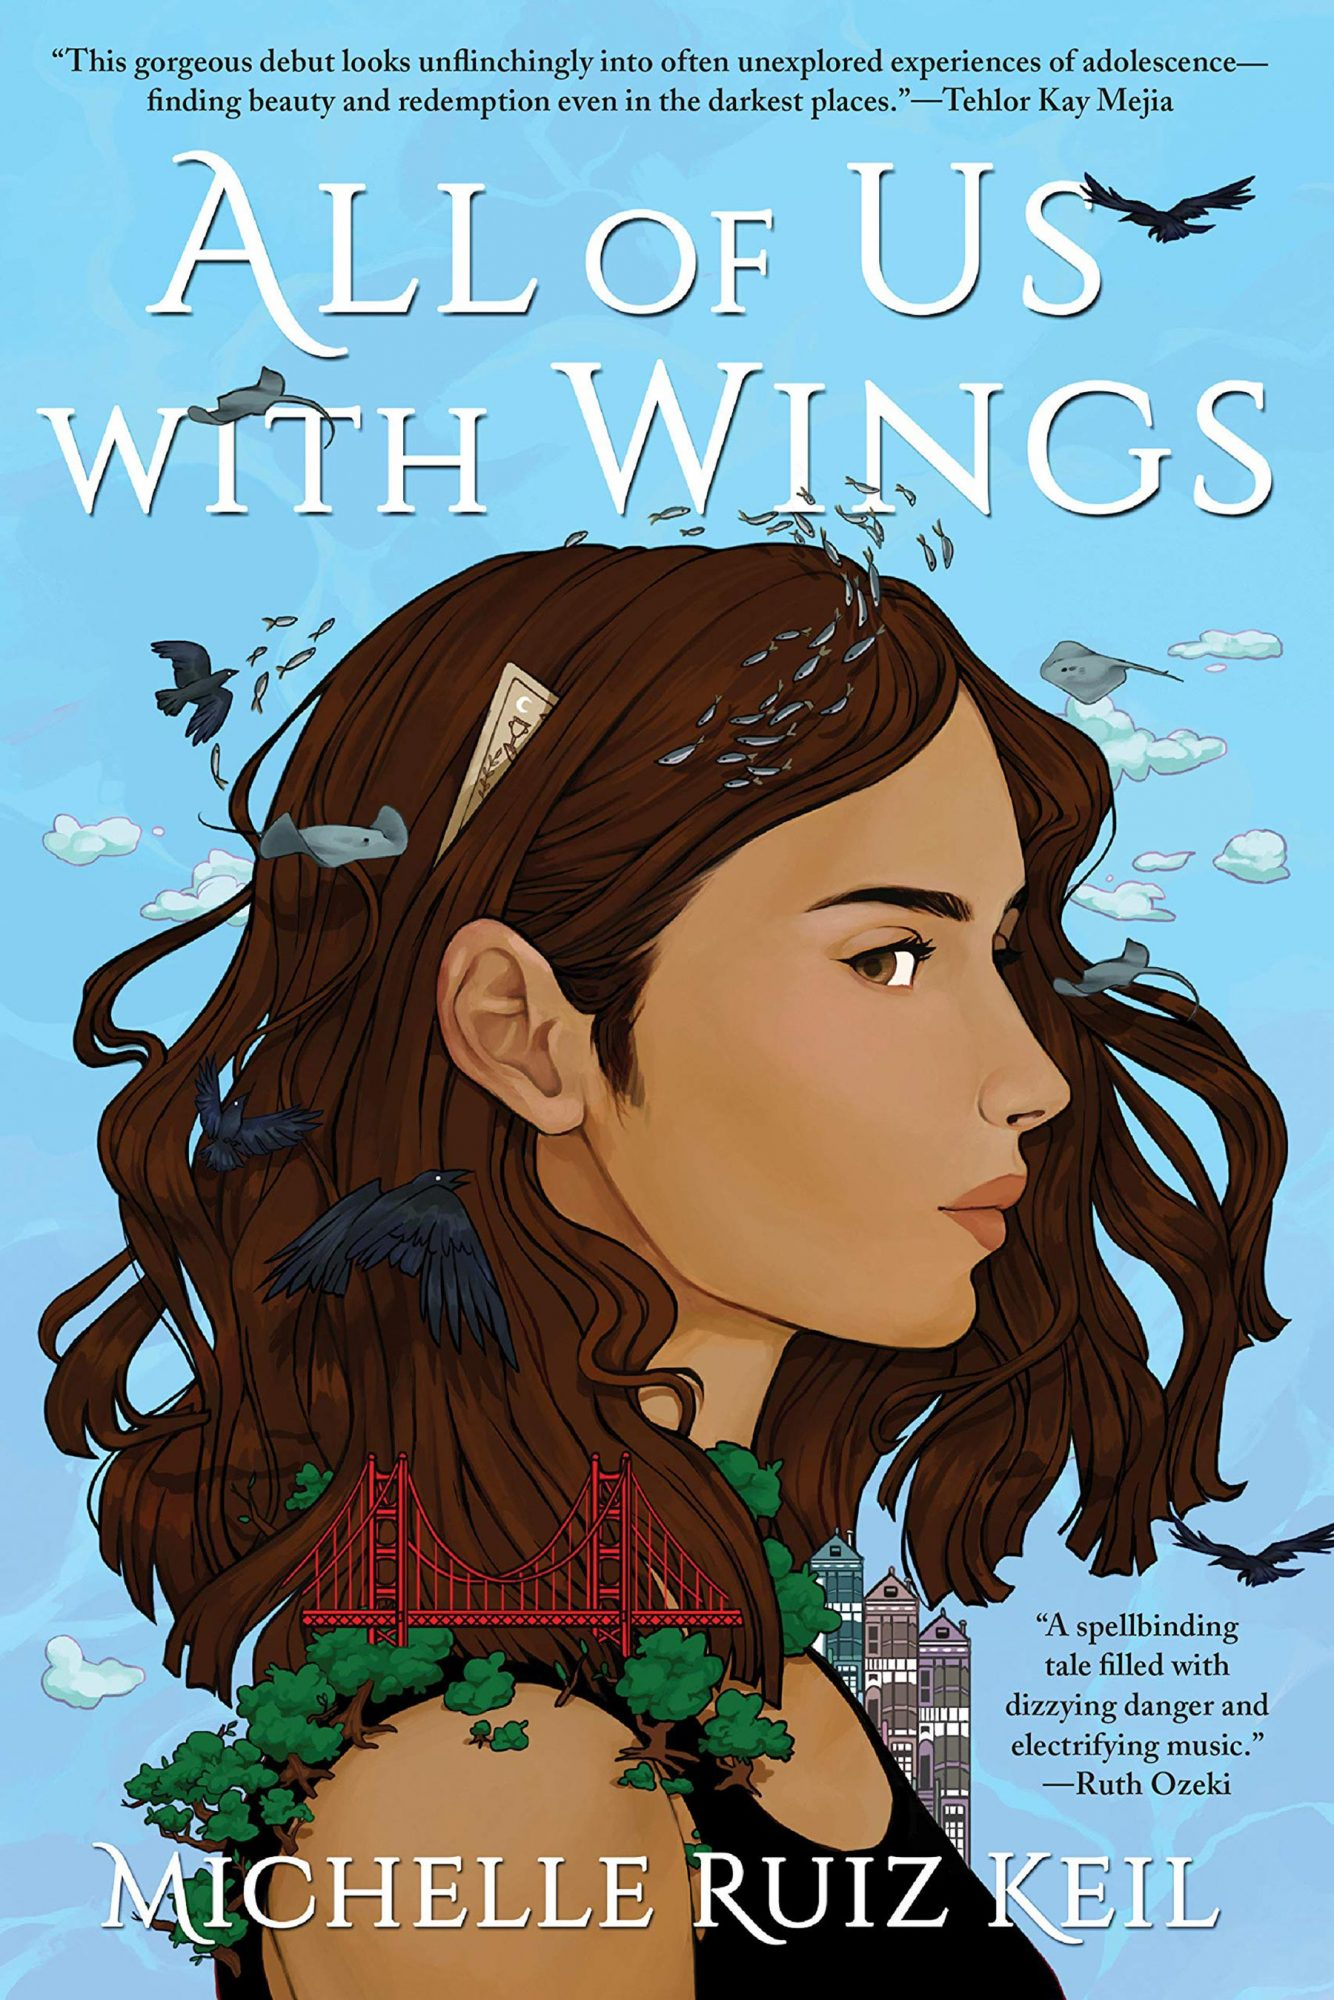 All of Us With Wings by Michelle Ruiz Keil Publisher: Soho Teen